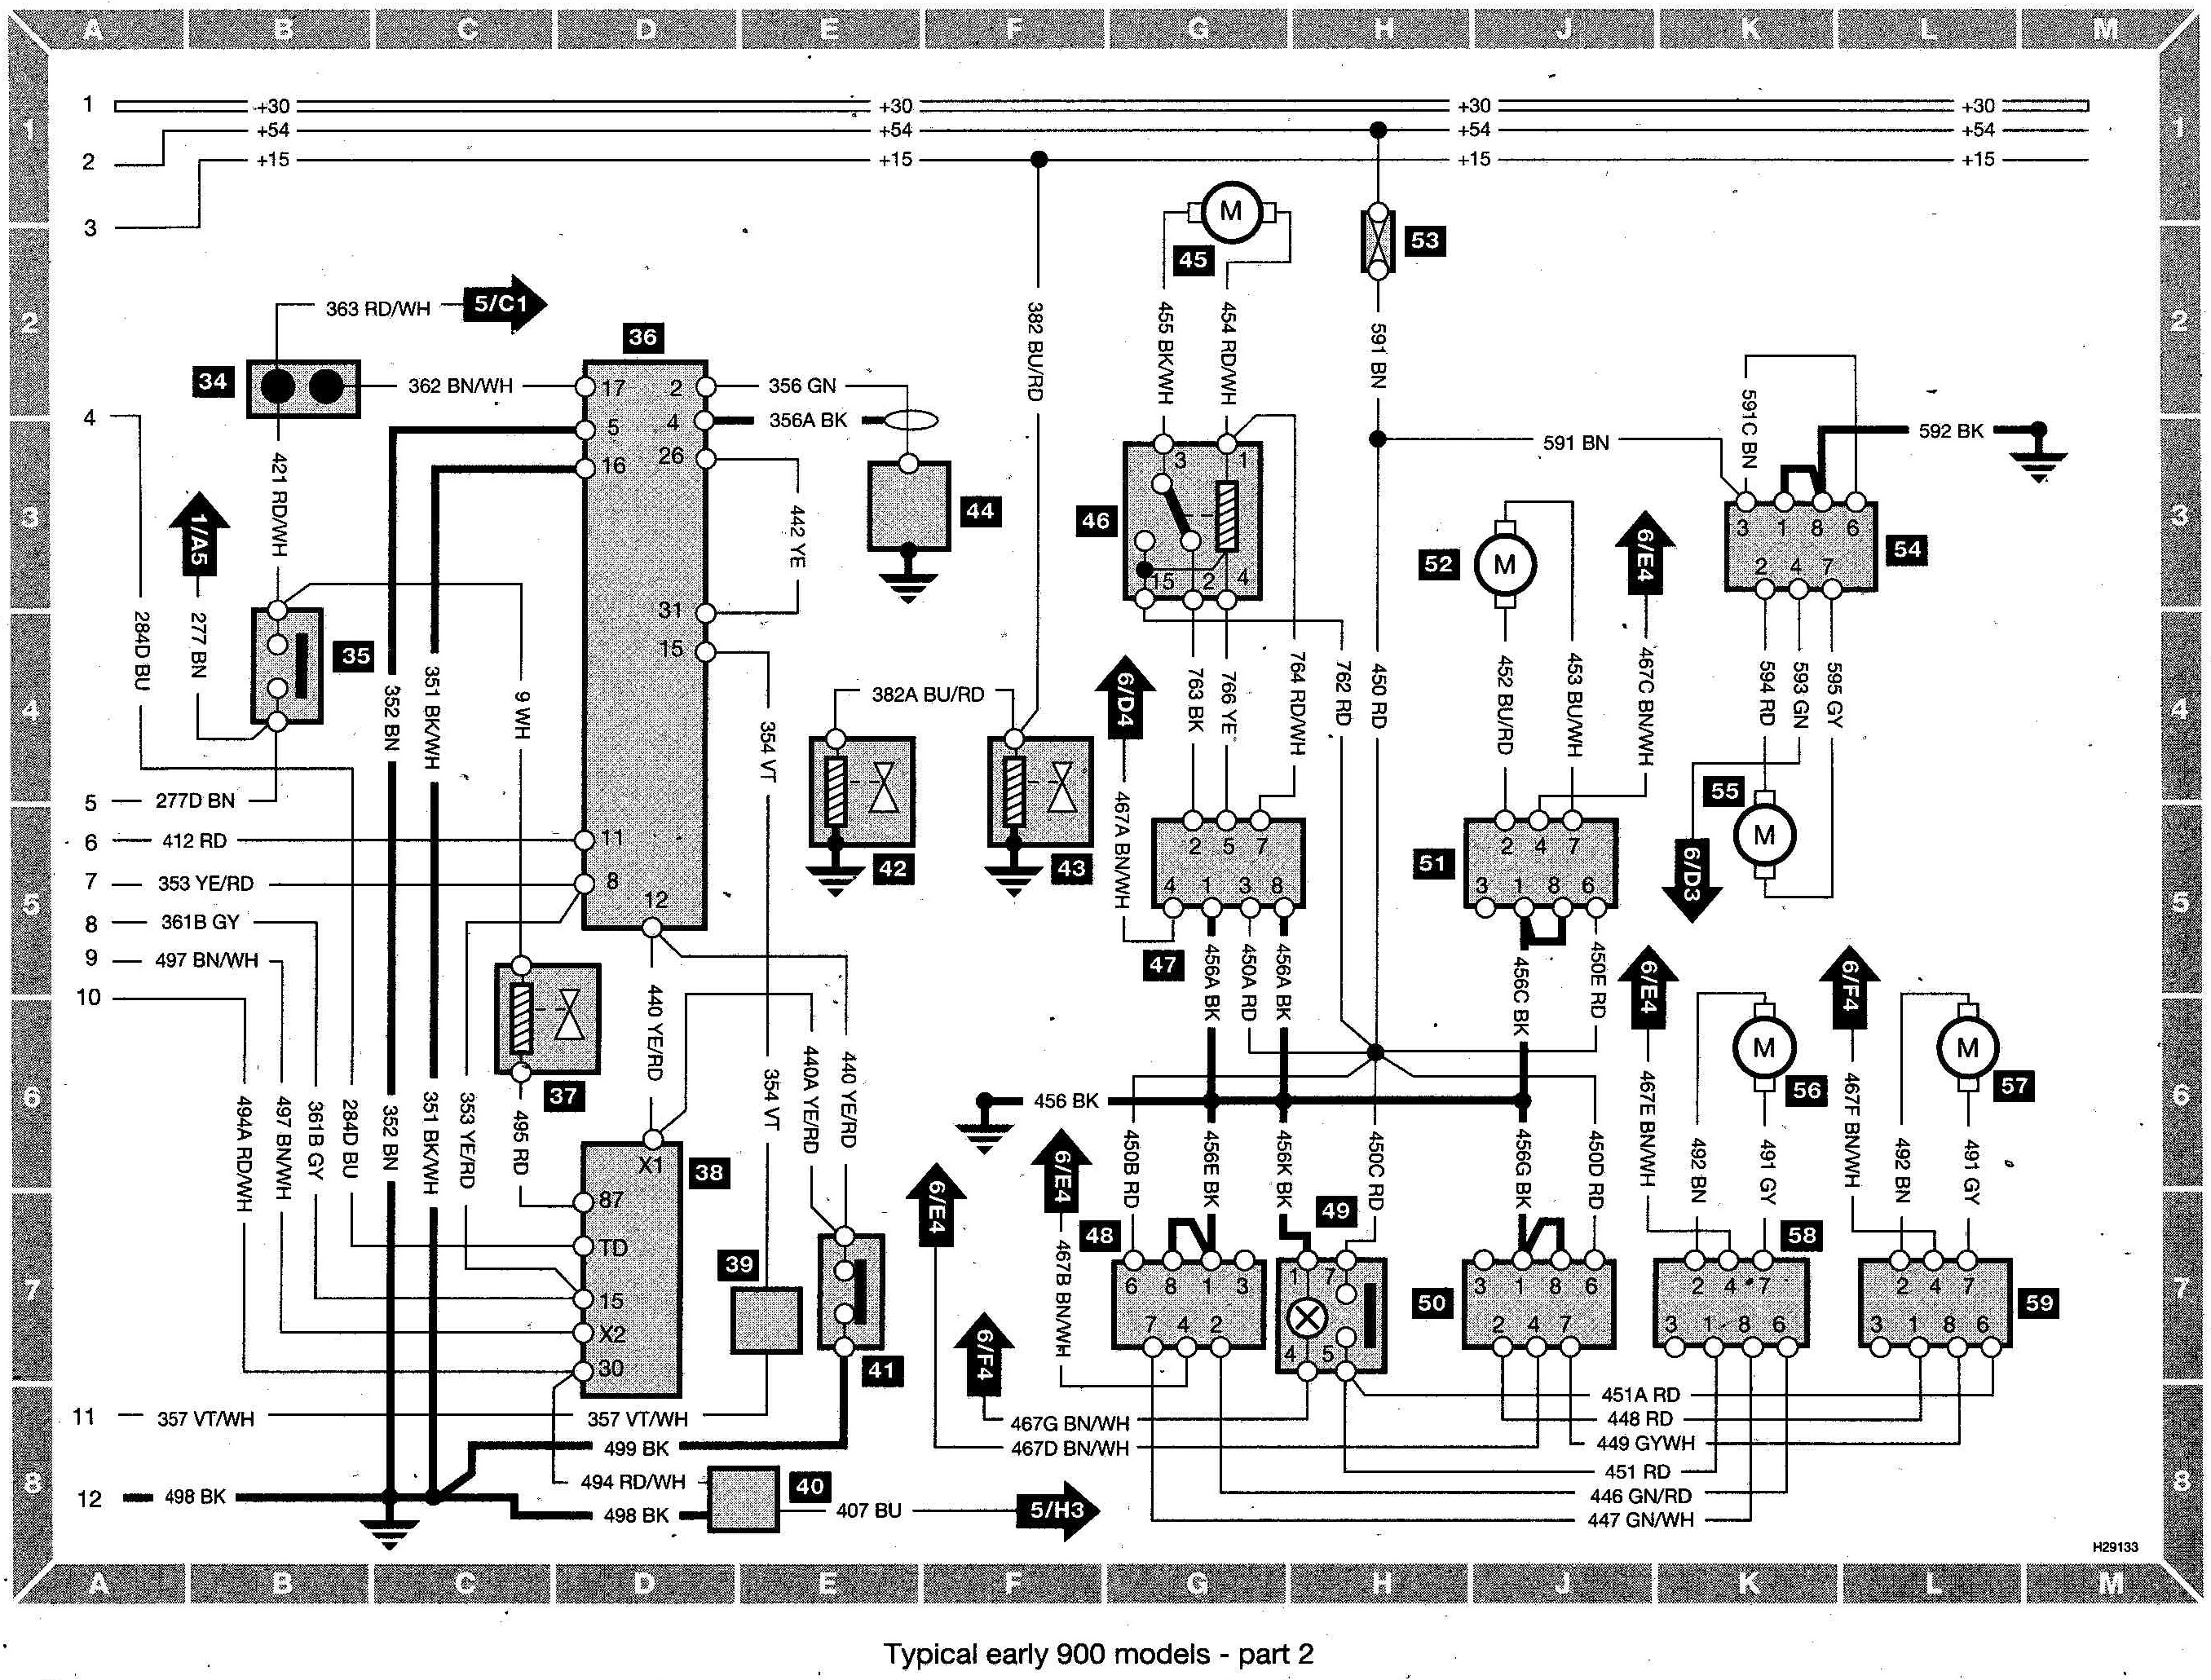 DIAGRAM] 2005 Saab 9 5 Wiring Diagram FULL Version HD Quality Wiring Diagram  - TWOFACEDTHEBOOK.DUNAMIX.FRtwofacedthebook.dunamix.fr